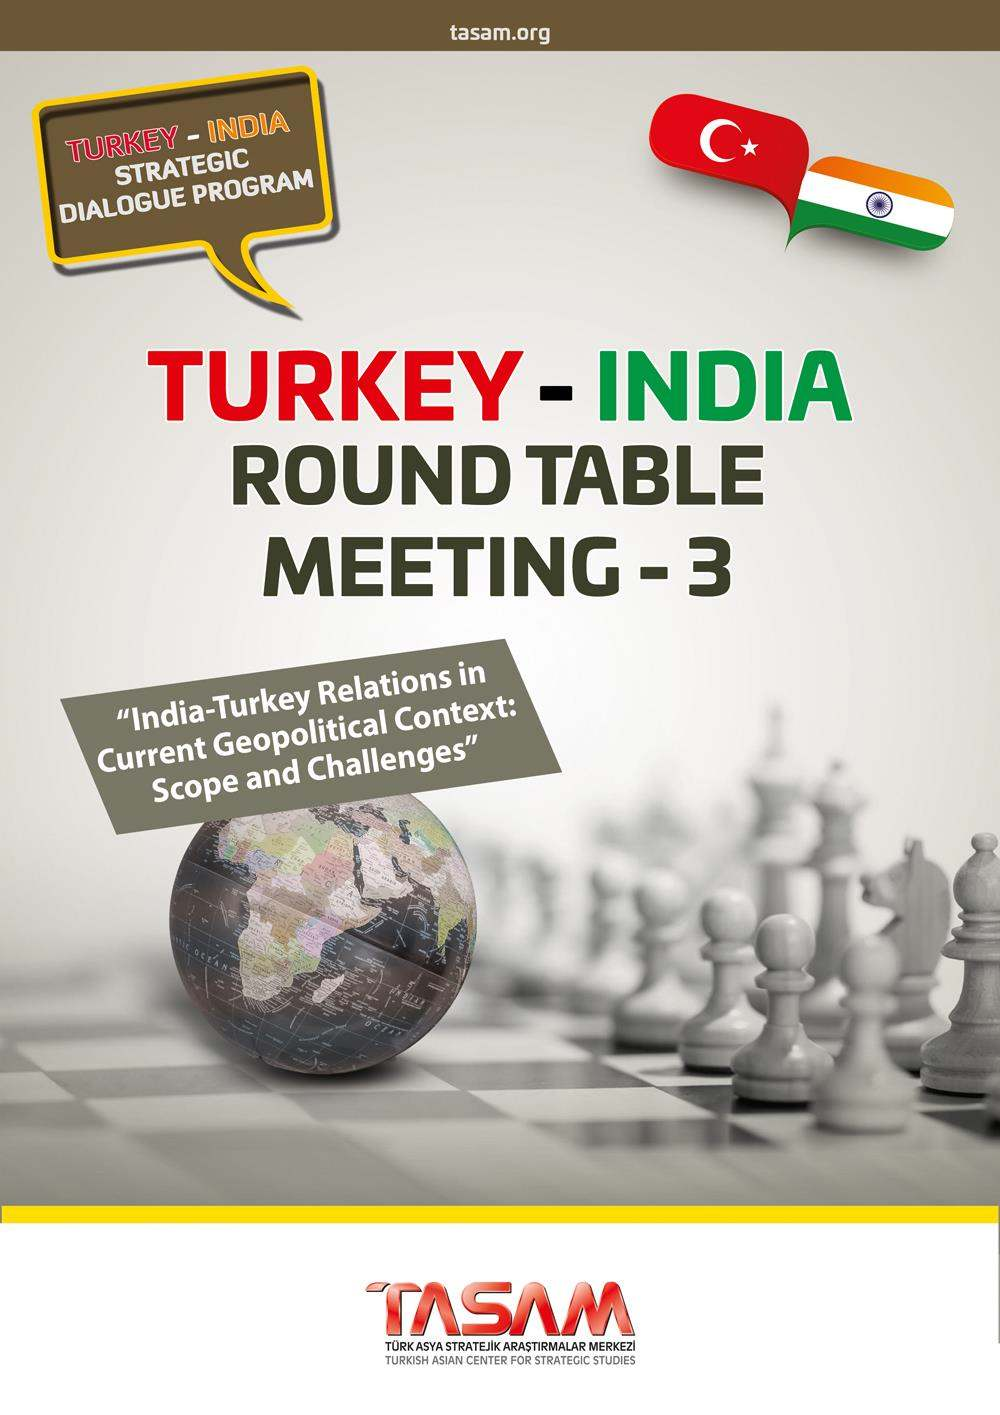 Turkey - India Round Table Meeting - 3